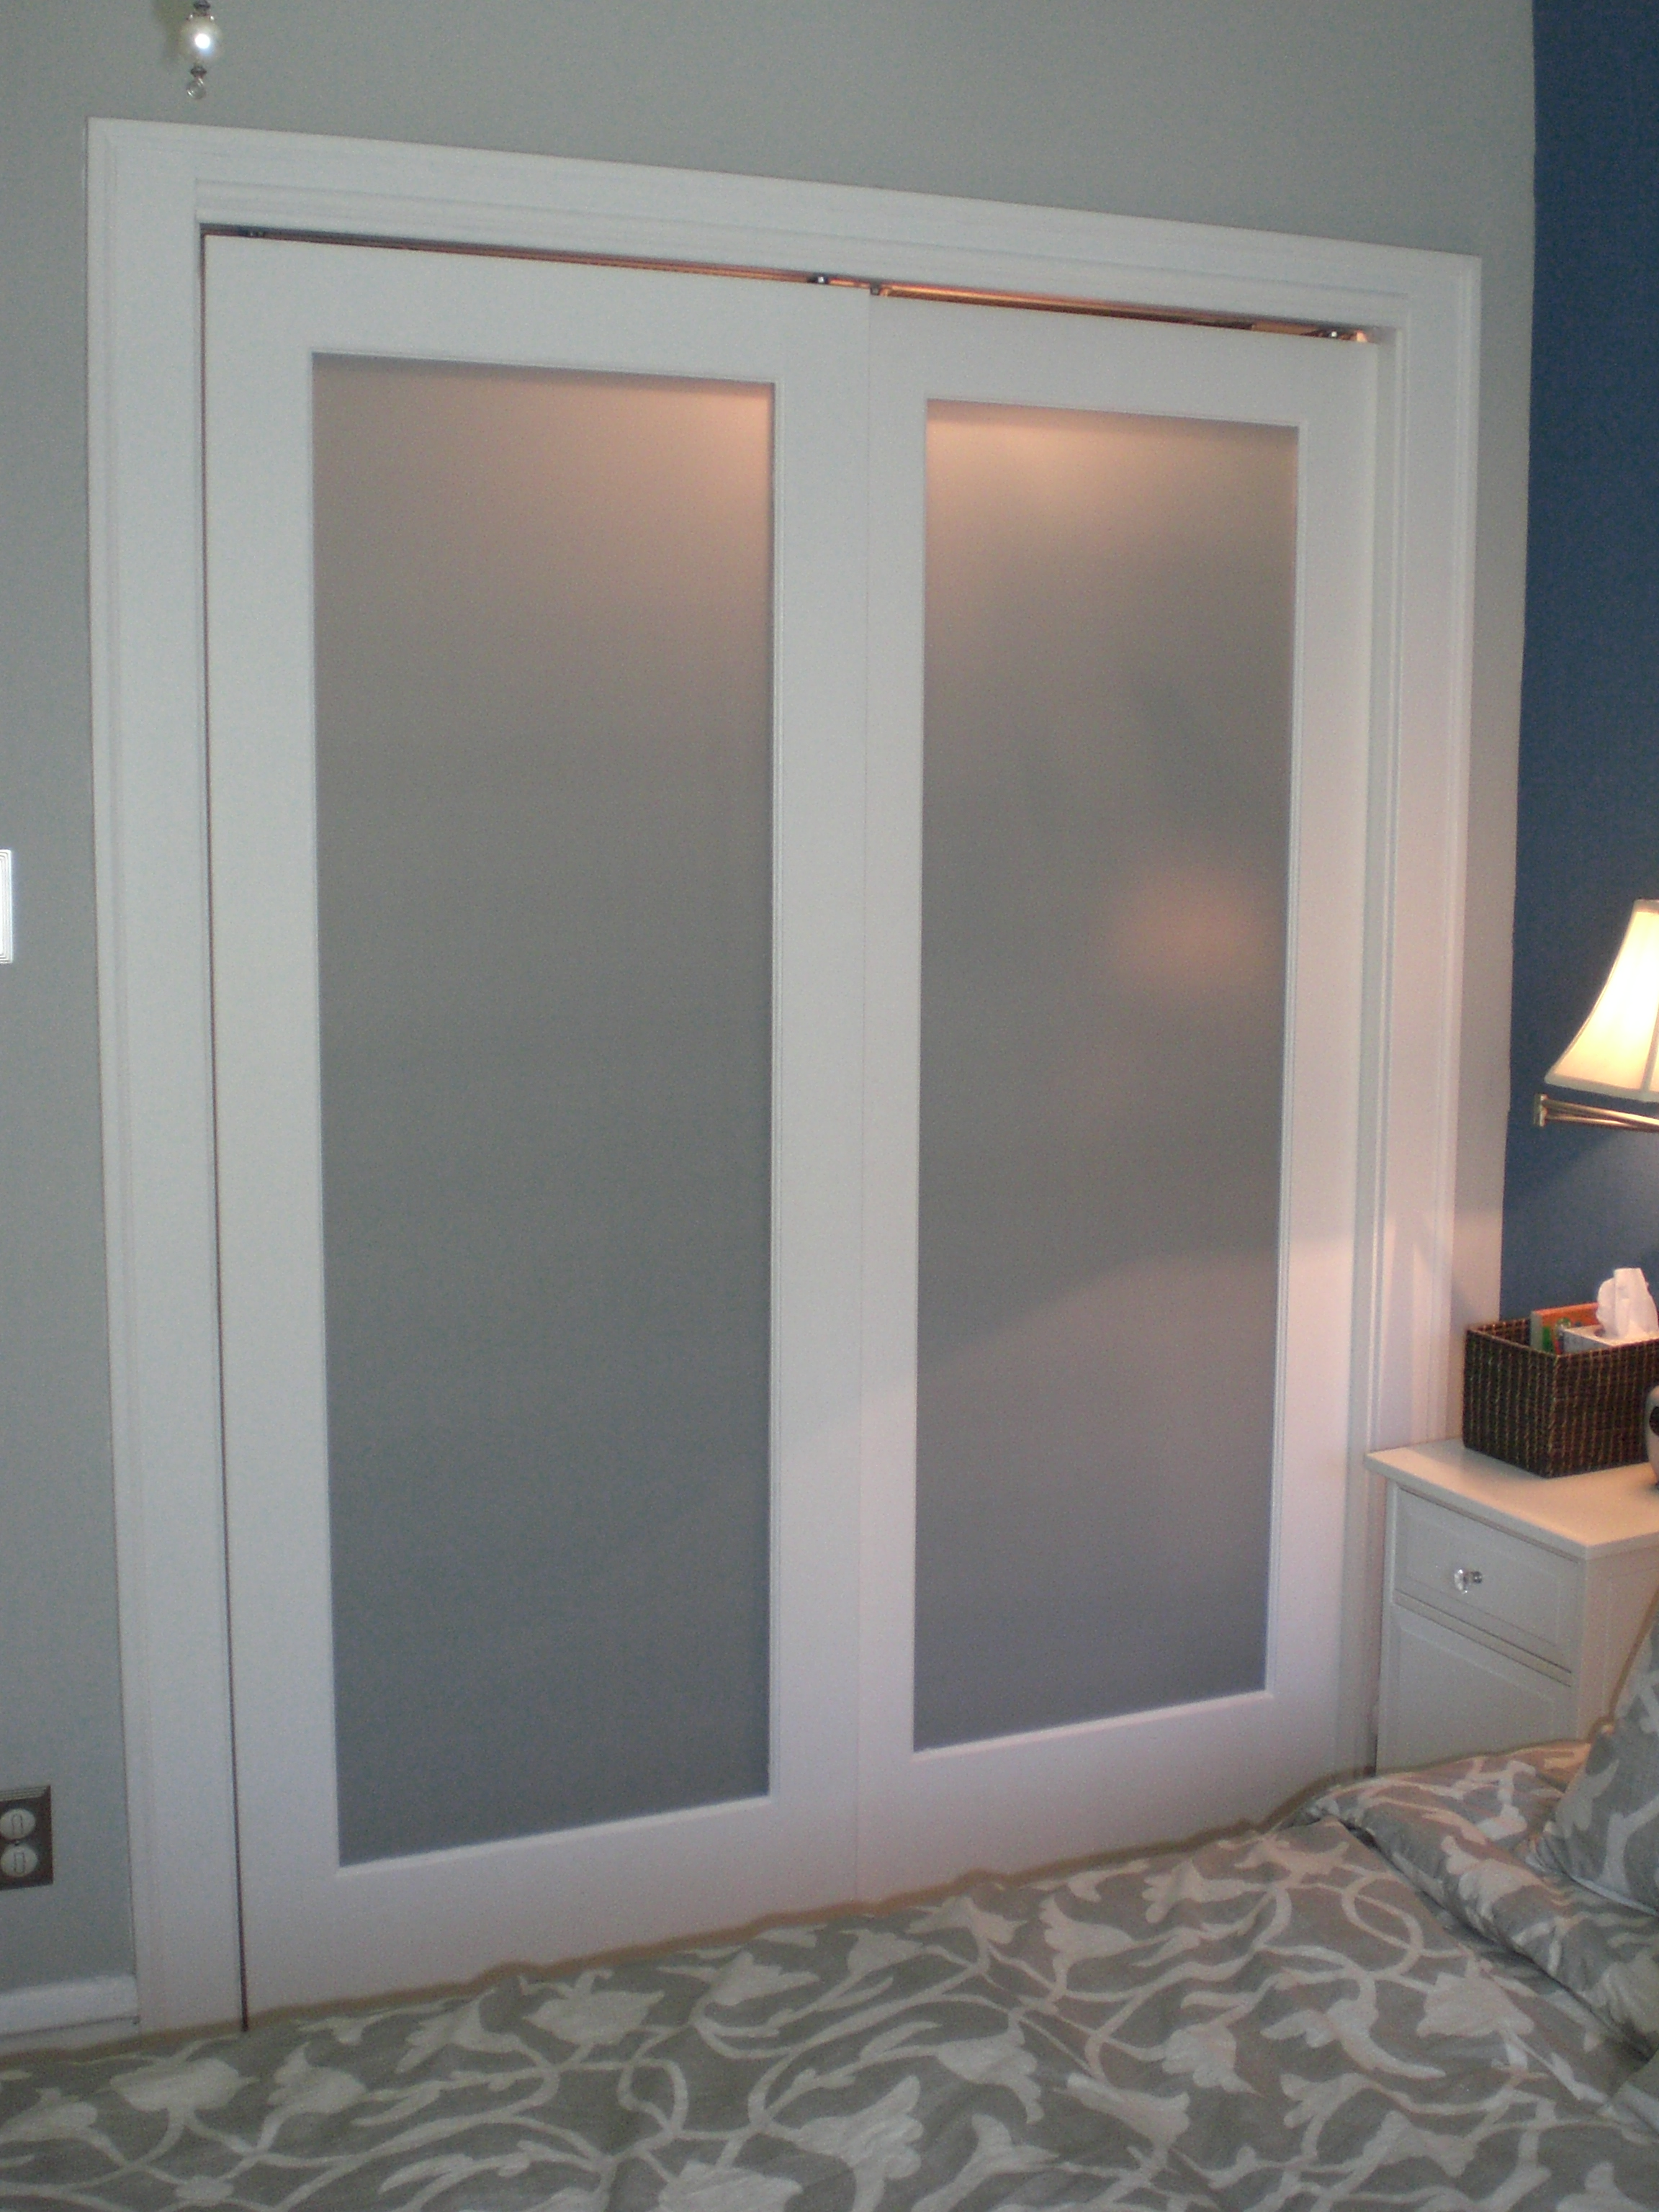 Frosted glass interior doors for bathrooms are not transparent